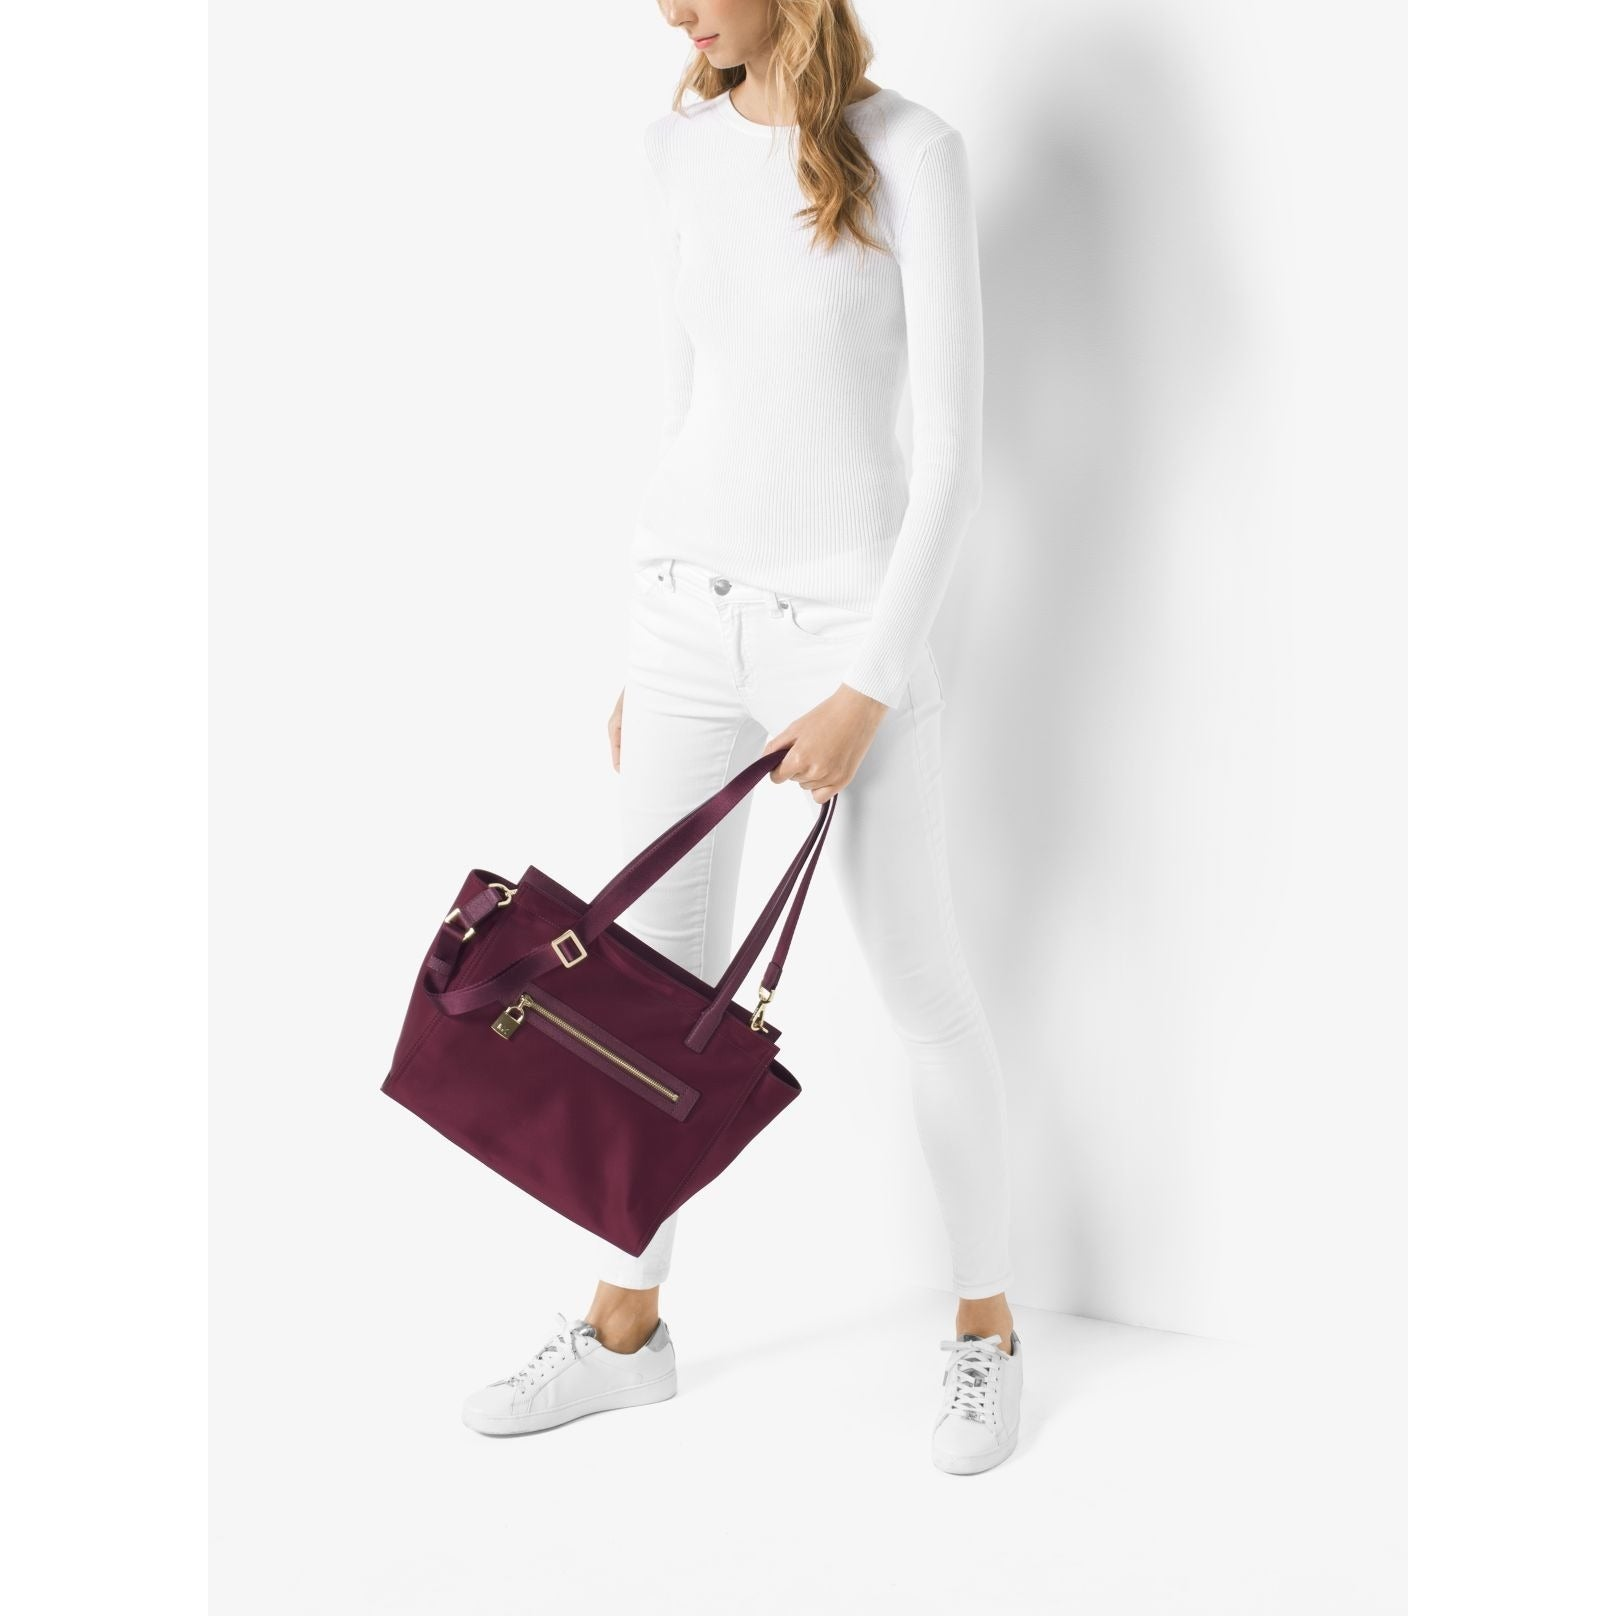 71321d3b1c2fc5 Shop Michael Kors Janie East West Plum Nylon Large Tote Bag - Free Shipping  Today - Overstock - 13344274